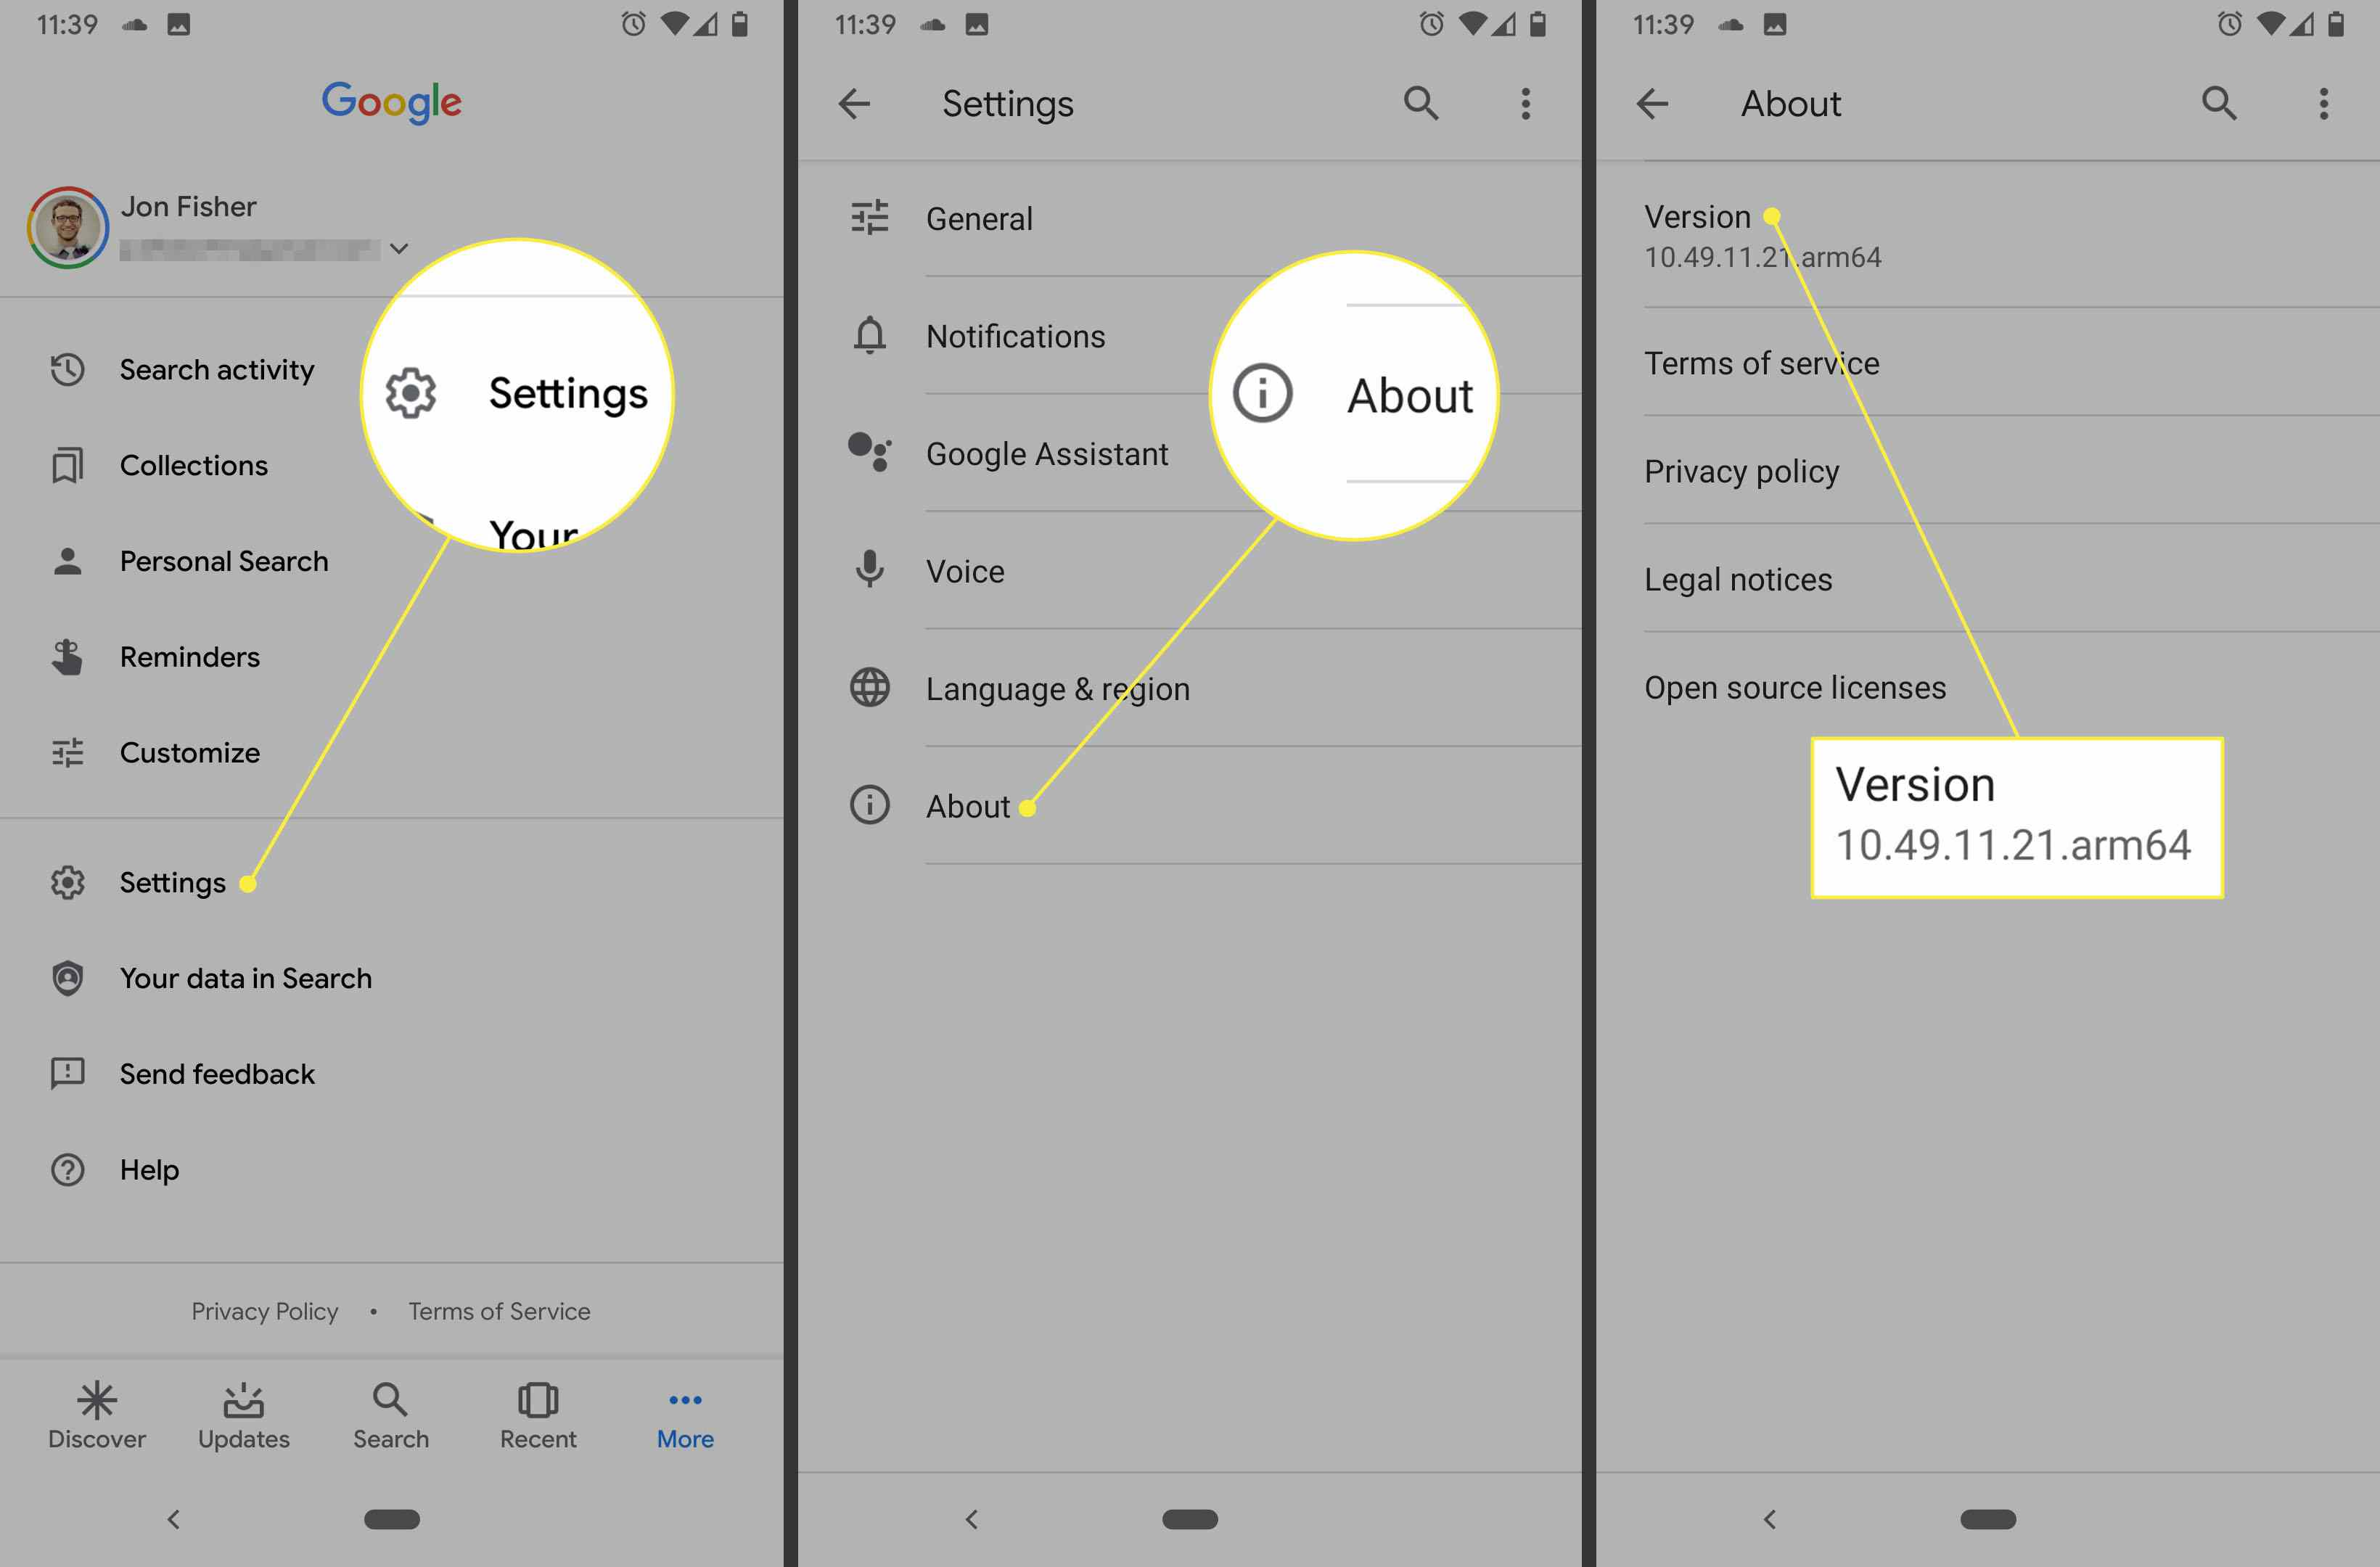 Google App more, settings, about screens.